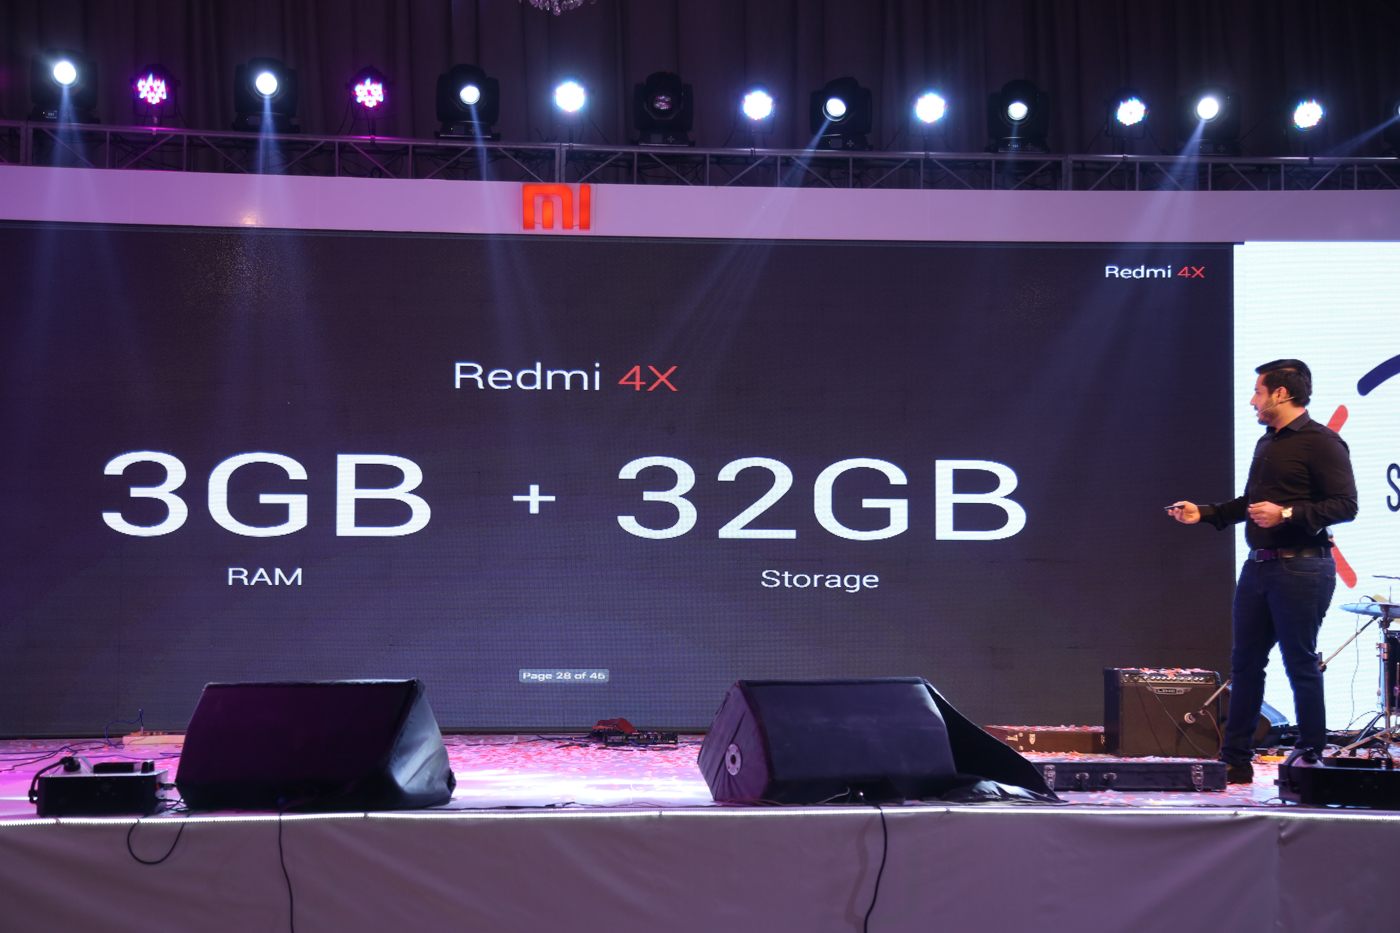 Ahmed-Butt-Launch Of Redmi 4X in Pakistan- Event by Mooroo & SmarLink Technologies